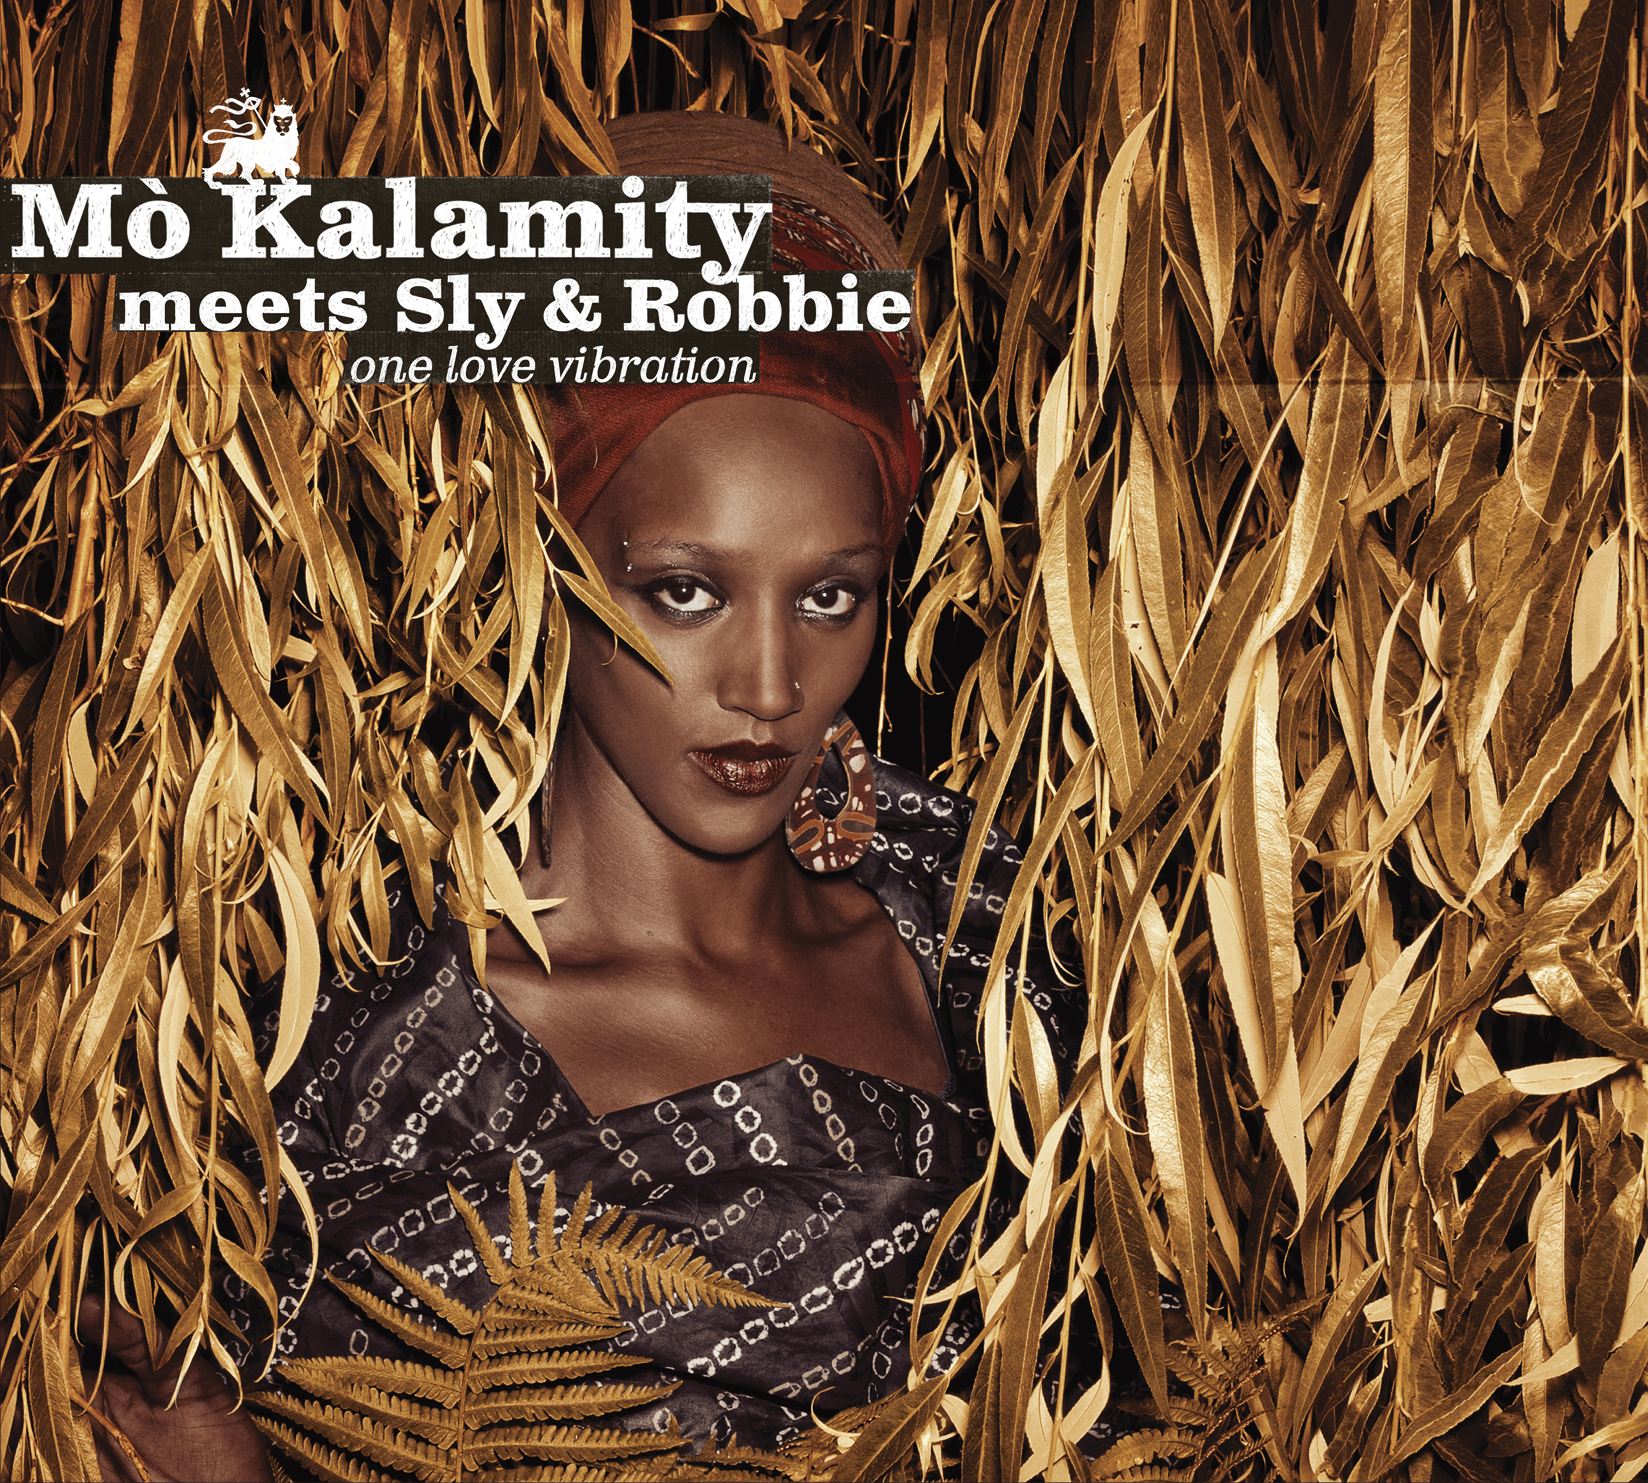 pochette-cover-artiste-Mo kalamity-album-Roots Party